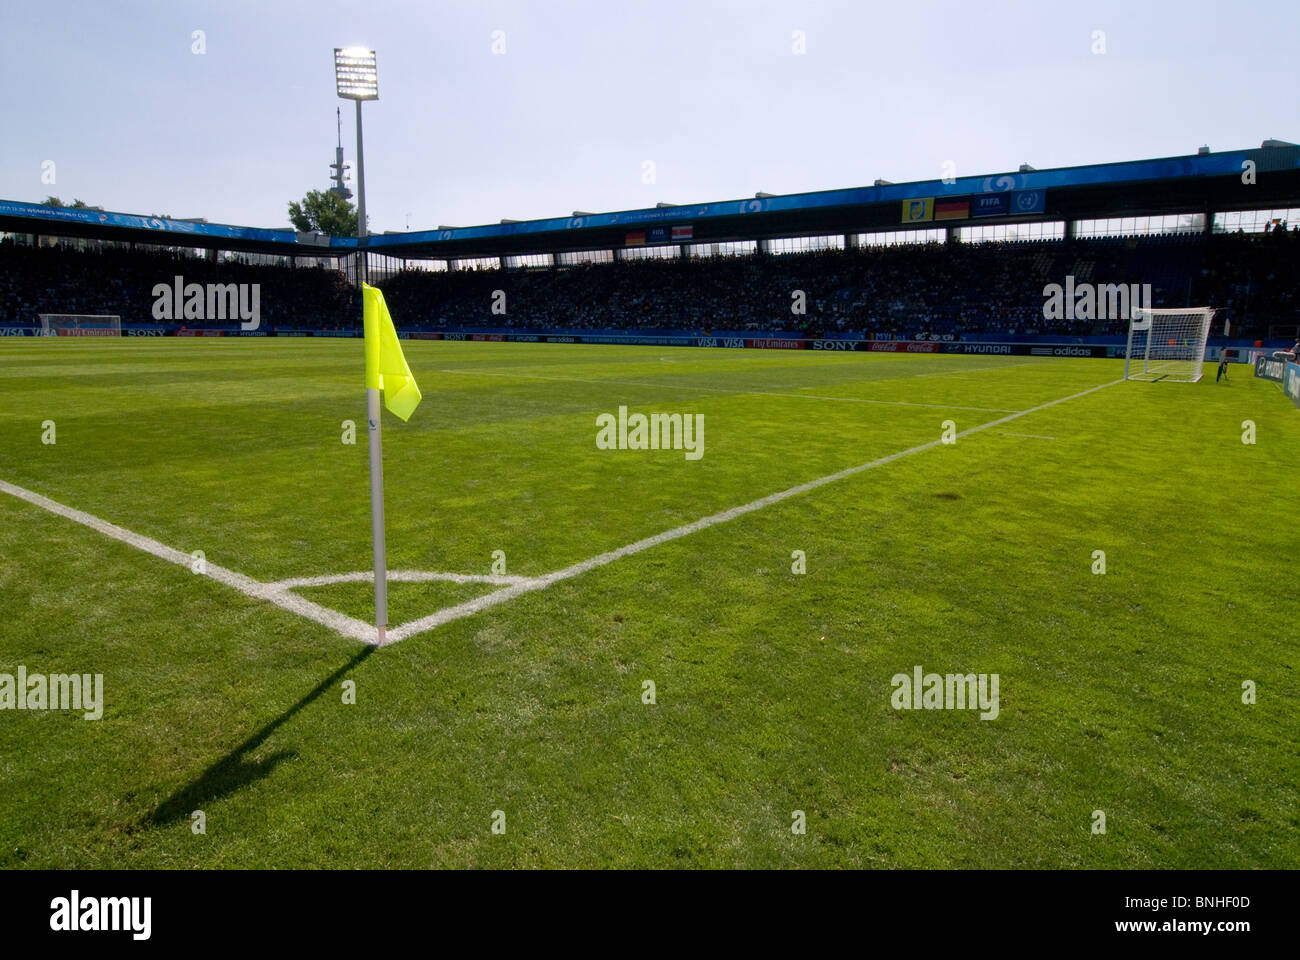 Soccerfield Ruhrstadion in Bochum, Germany with corner flag. - Stock Image